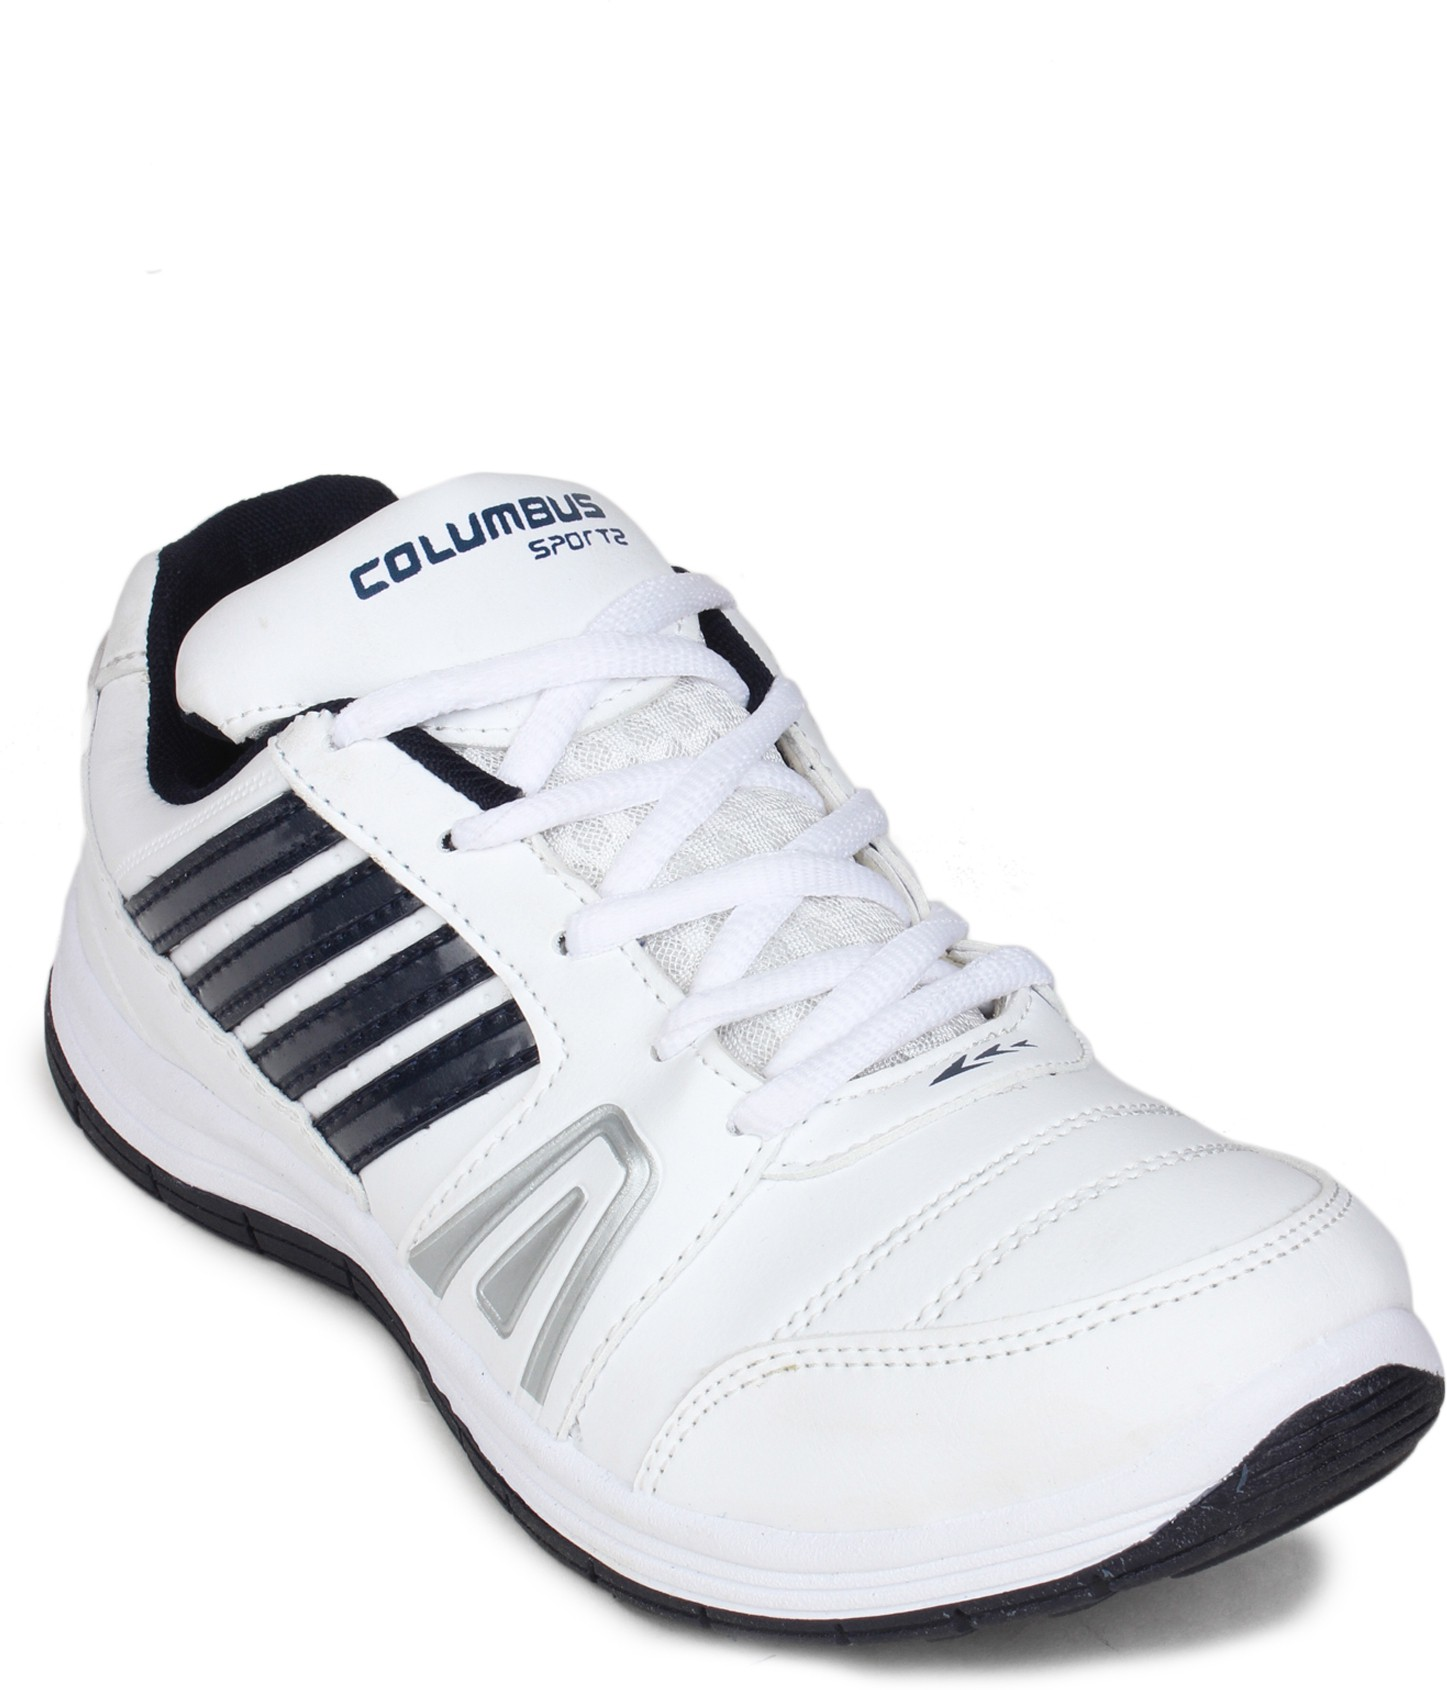 Columbus Running Shoes(White, Navy)